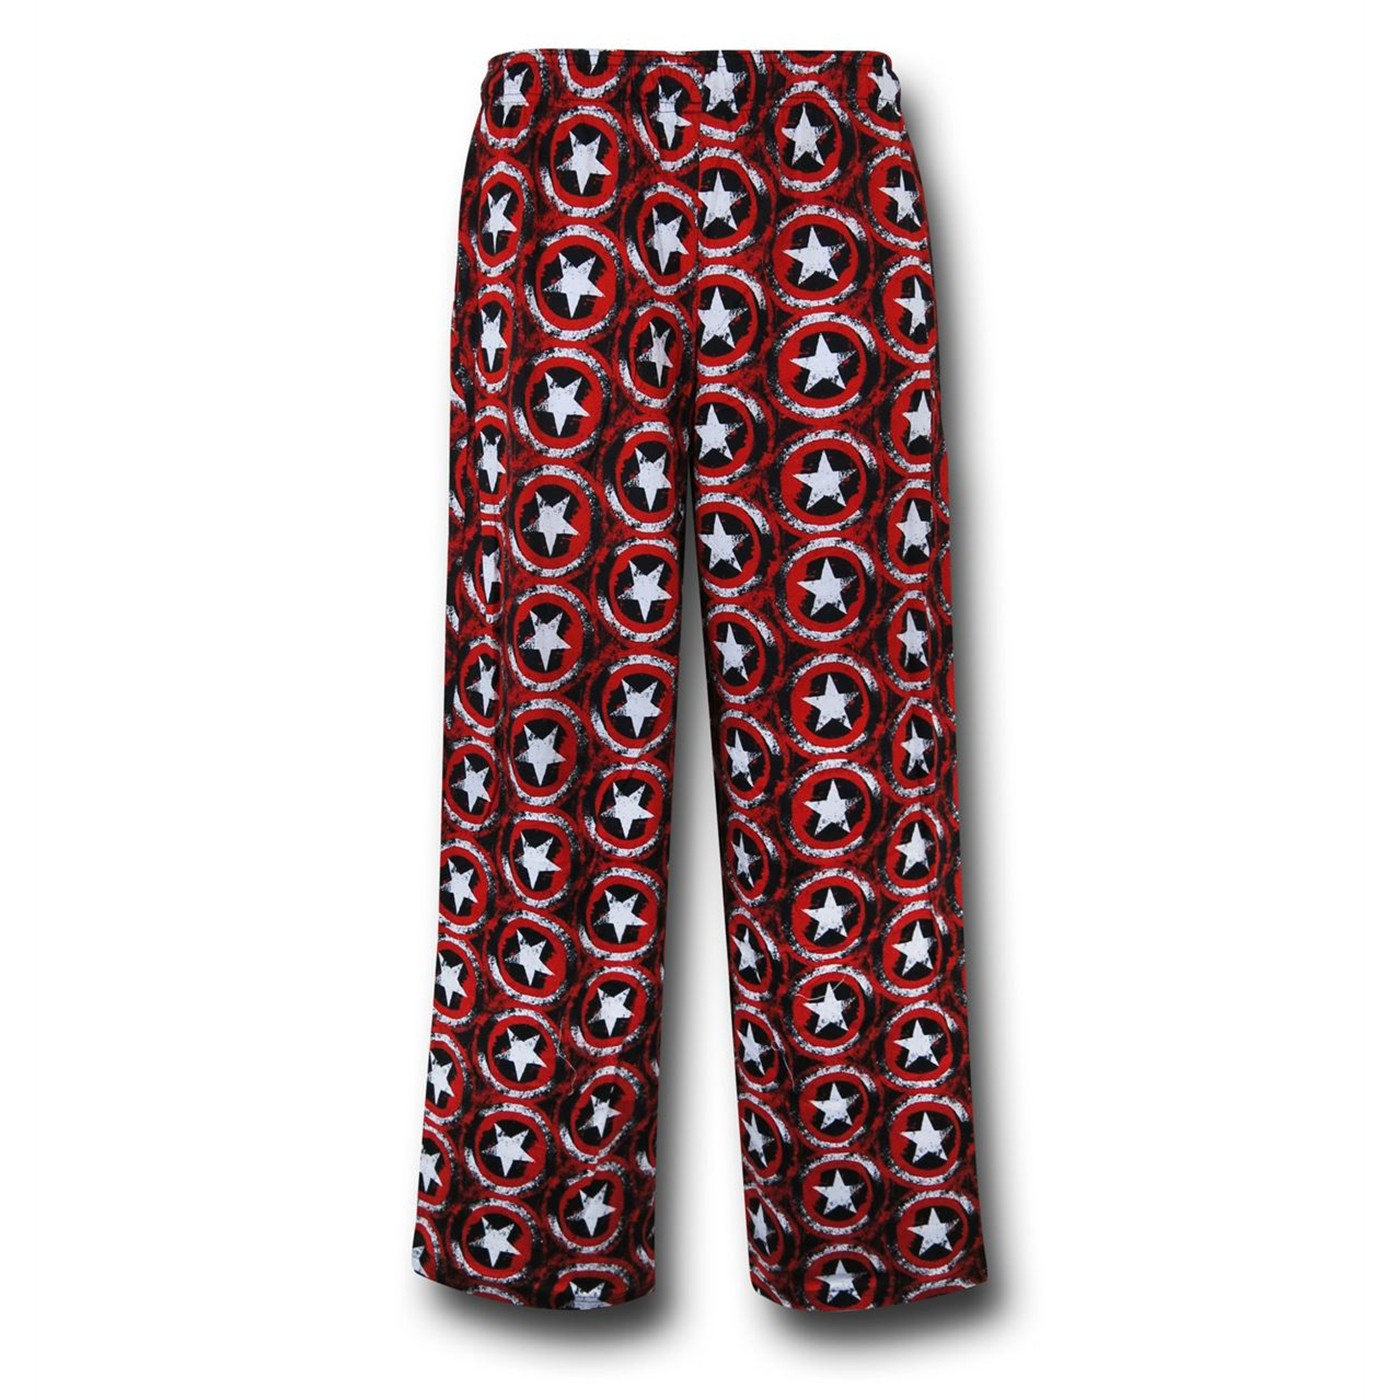 Captain America Shields All-Over Men's Pajama Pants